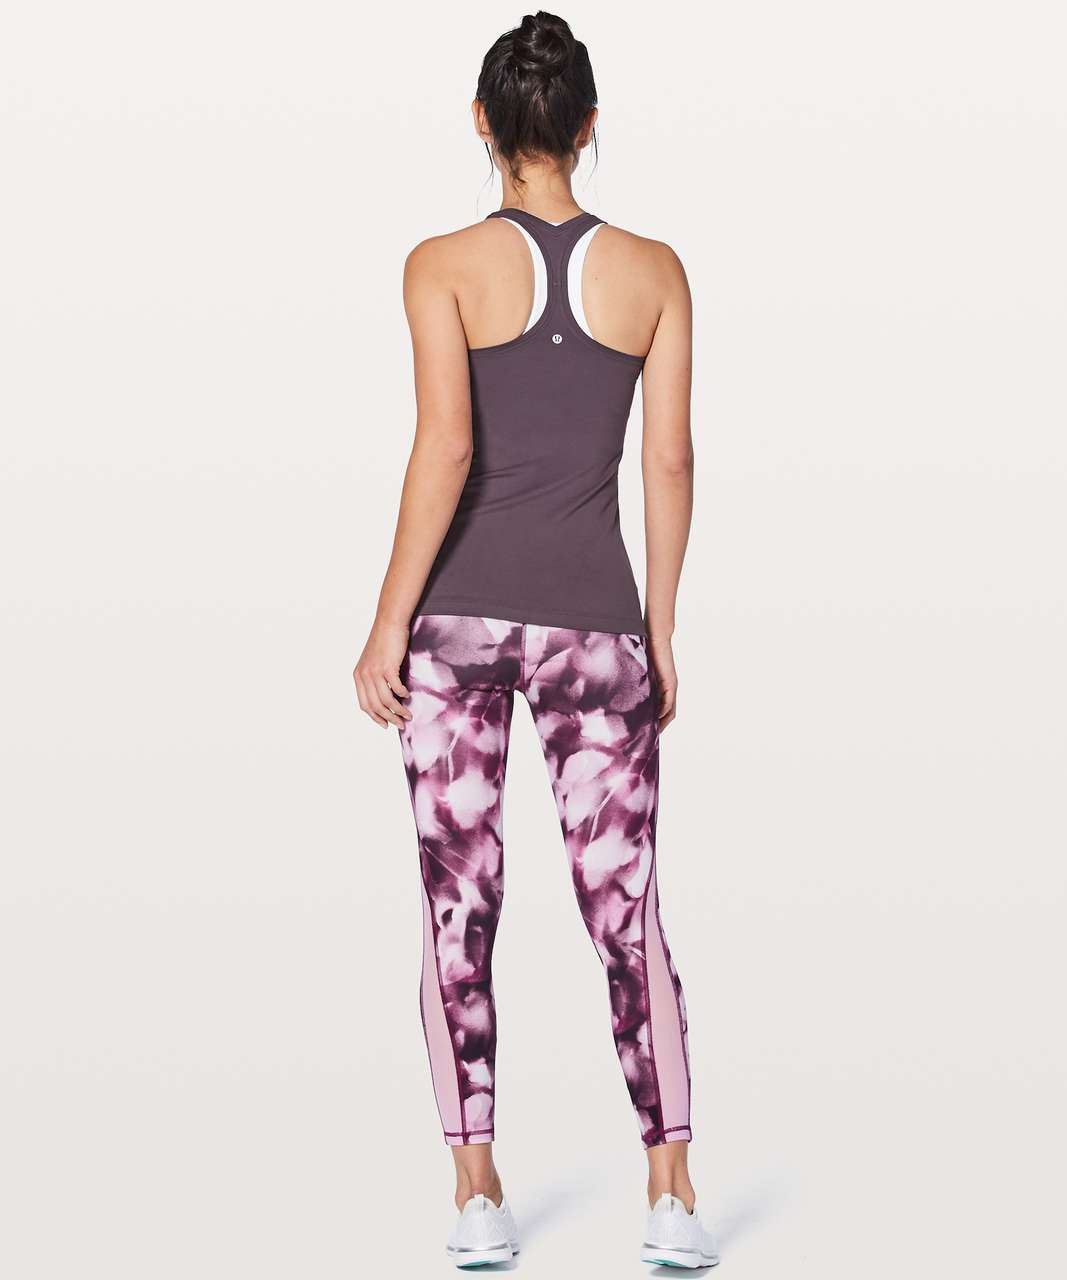 Lululemon Cool Racerback II Nulu - Black Currant